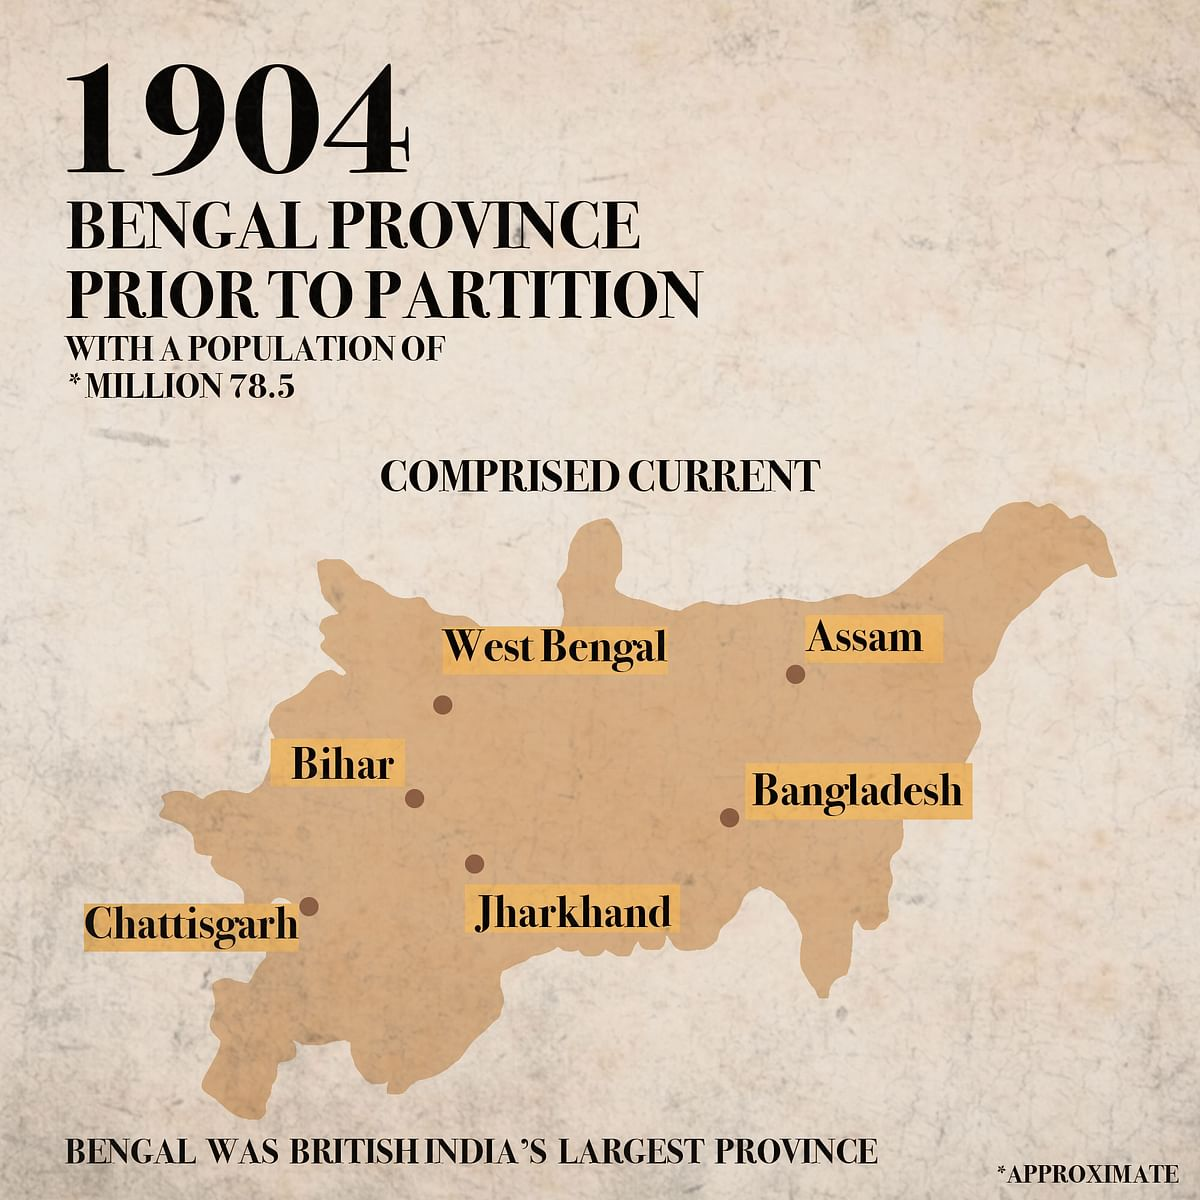 Undivided Bengal Province